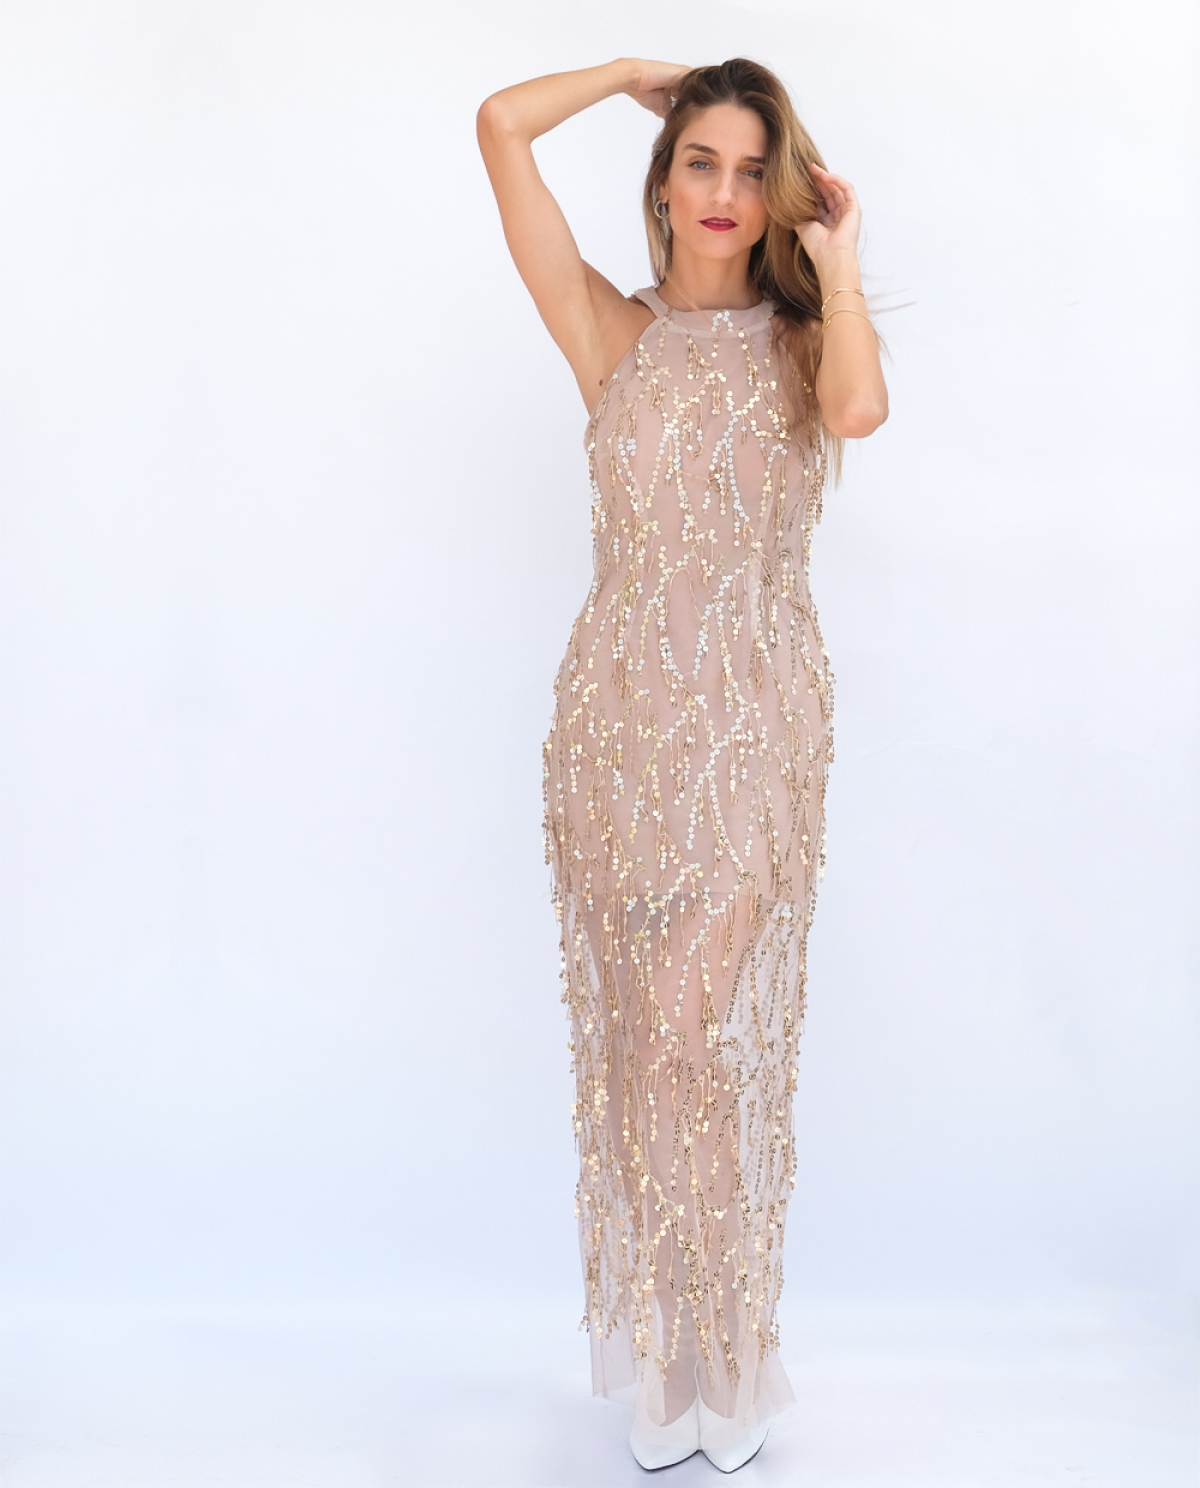 35d9d8a934e9 Embellished Tulle Sequined Maxi Dress